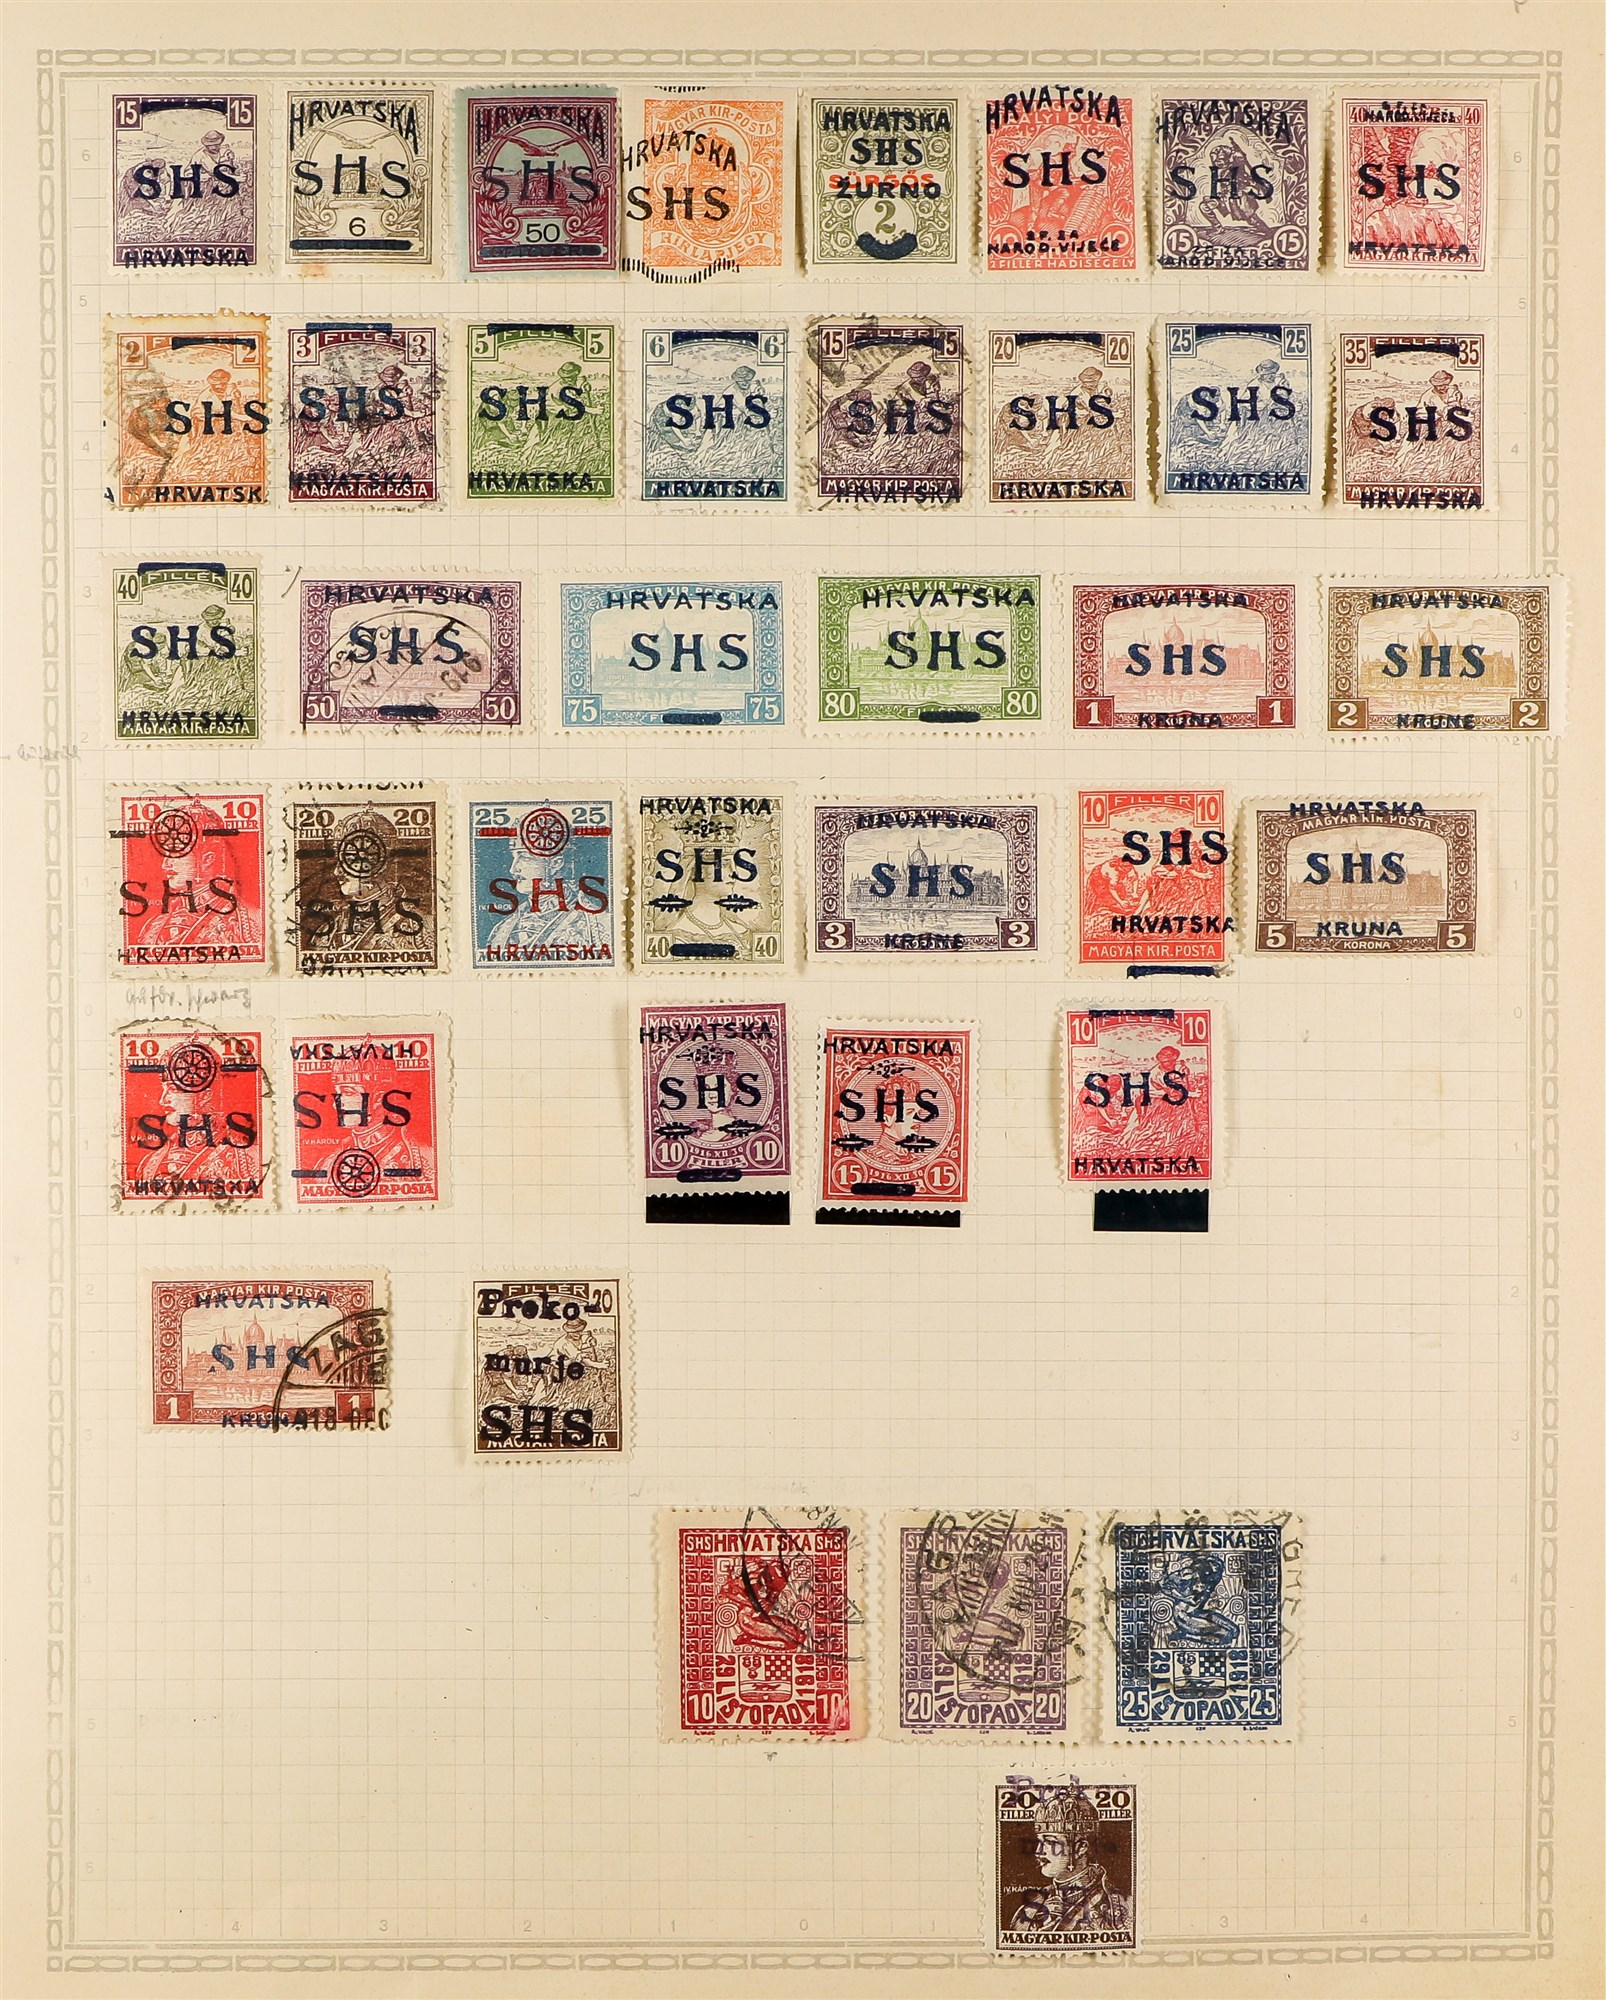 YUGOSLAVIA 1919-80 COLLECTION of mint and used issues in an album, incl. extensive Chainbreakers, - Image 6 of 17